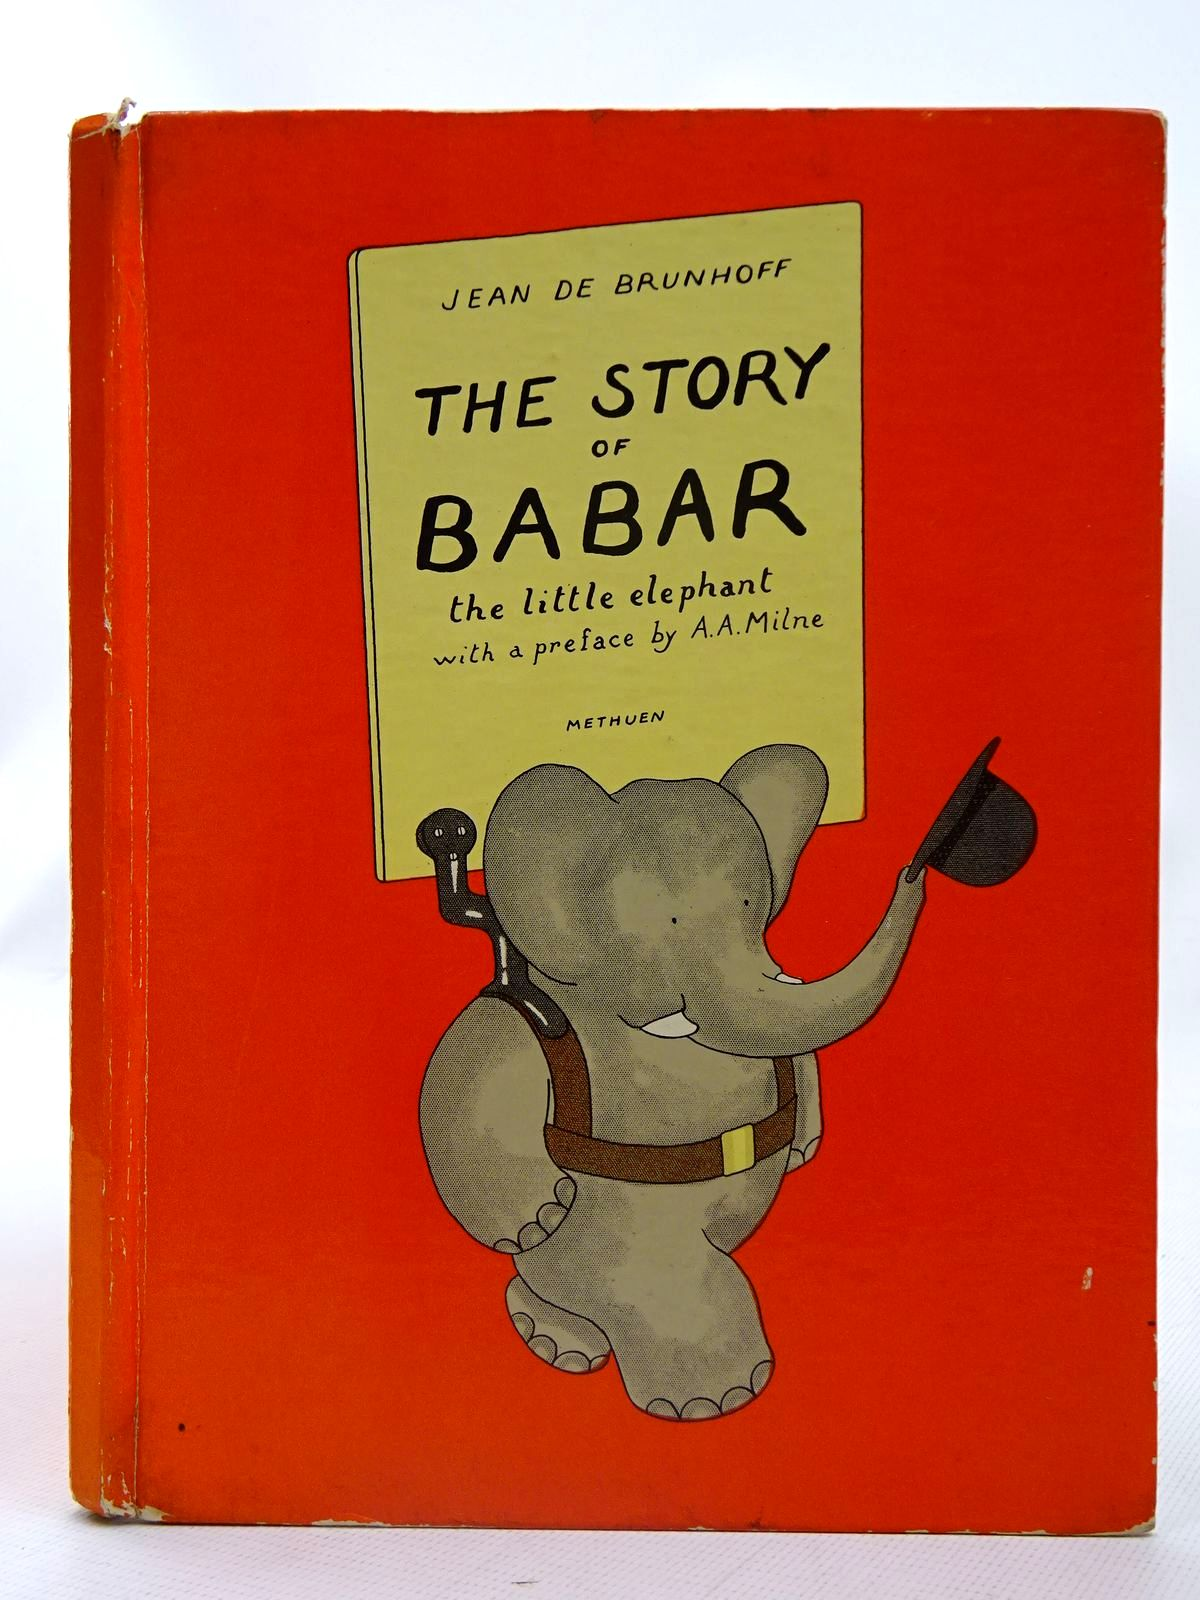 Photo of THE STORY OF BABAR THE LITTLE ELEPHANT written by De Brunhoff, Jean Milne, A.A. illustrated by De Brunhoff, Jean published by Methuen & Co. Ltd. (STOCK CODE: 2126696)  for sale by Stella & Rose's Books